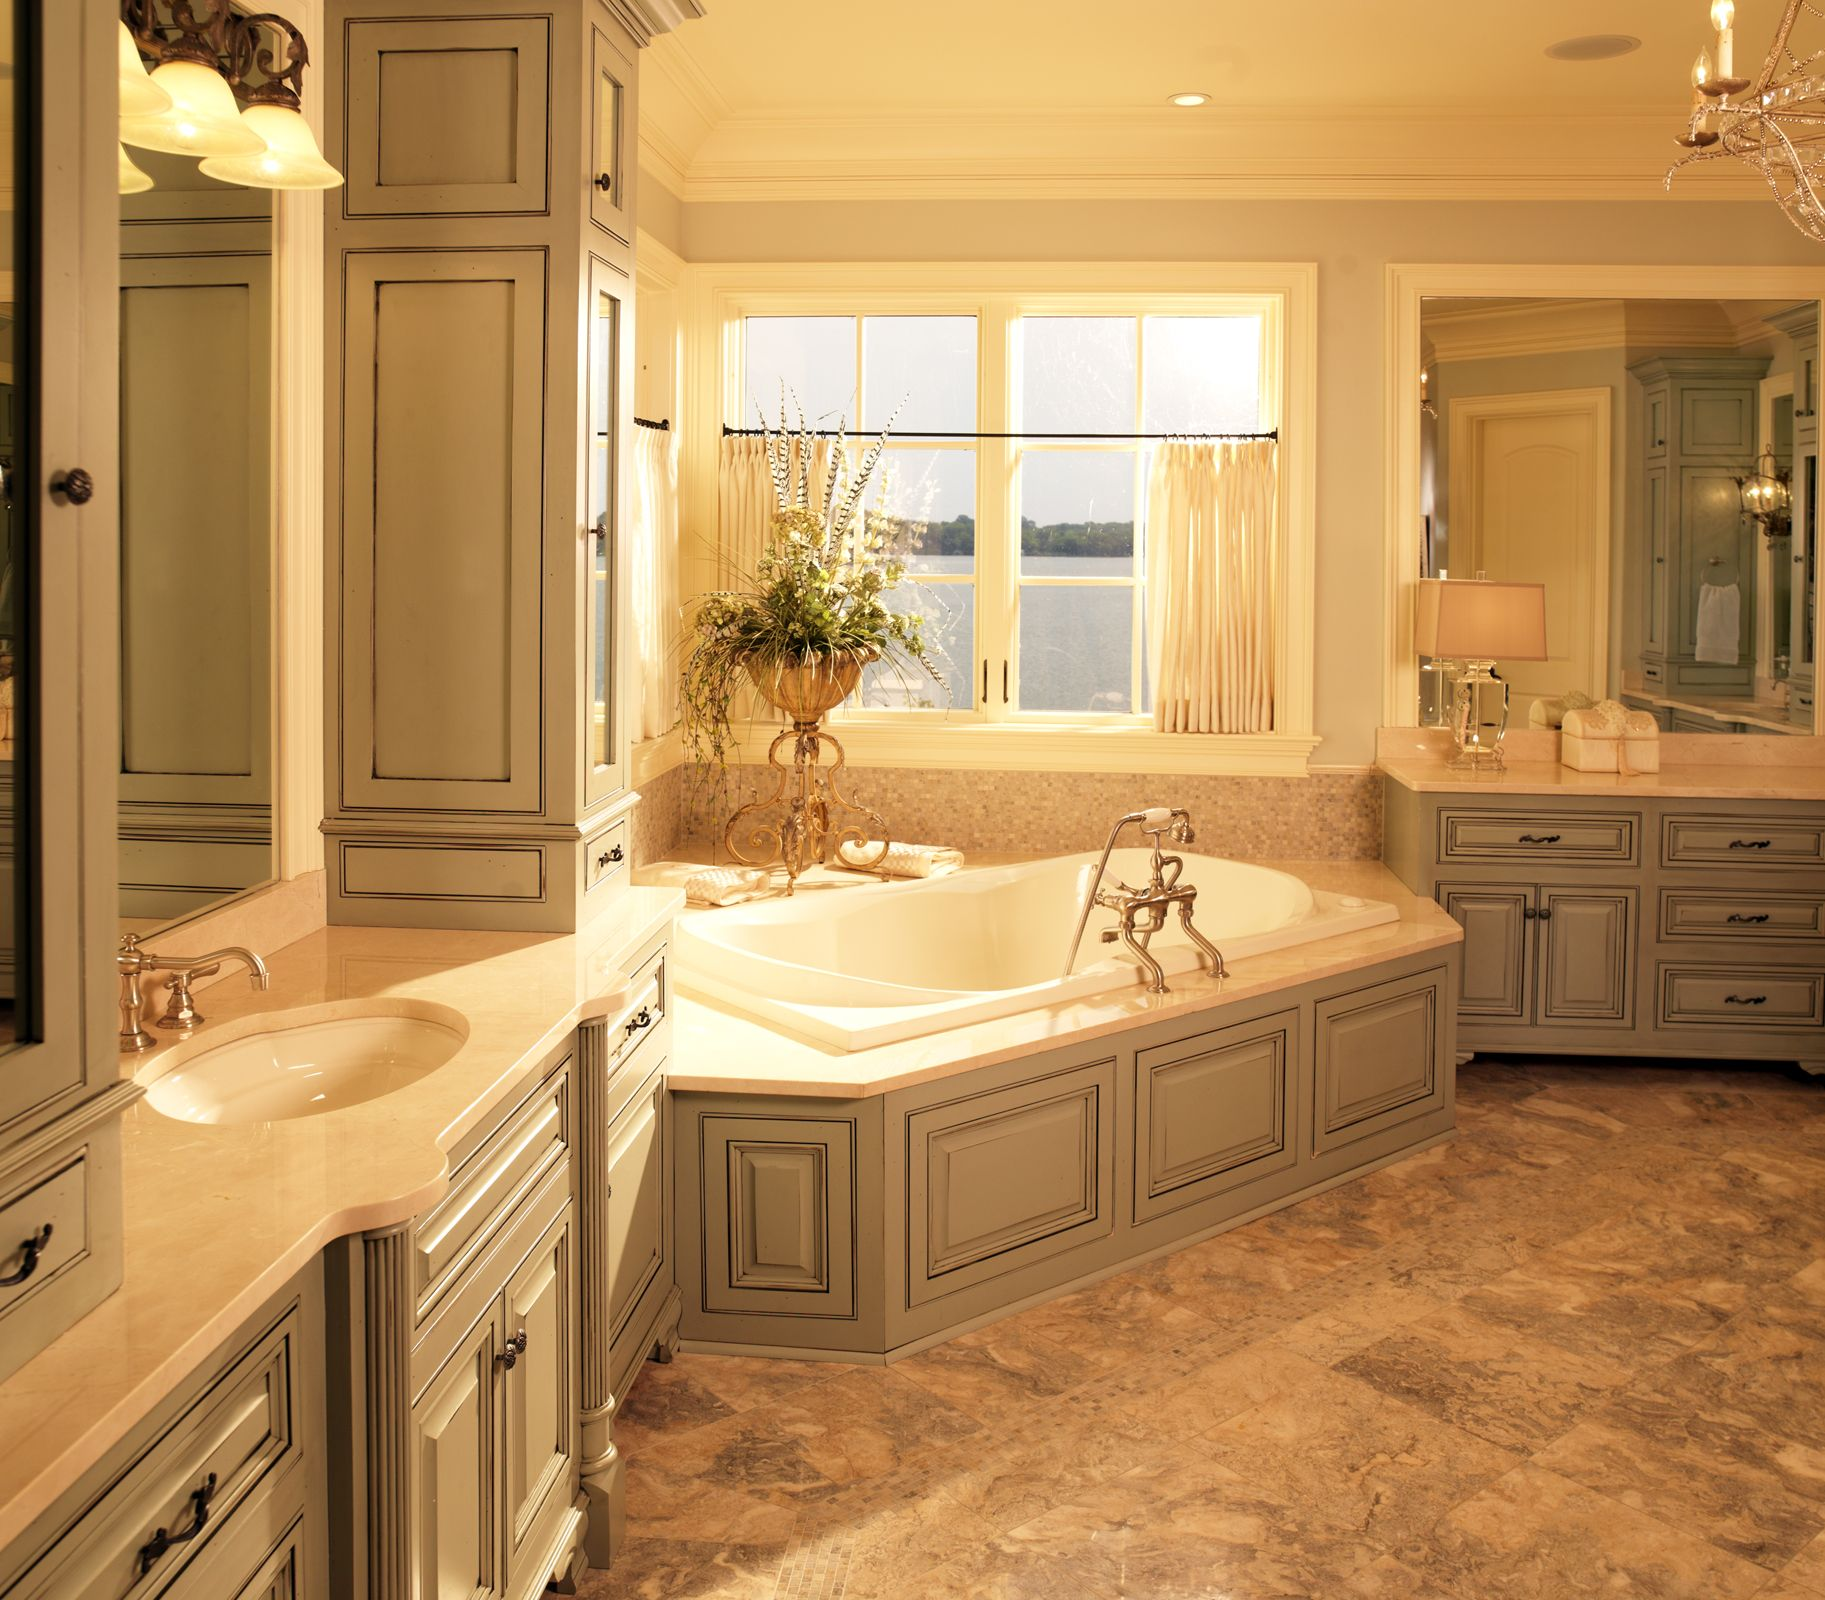 Big master bathroom - Master Bathroom Designs Big Part Of The Master Bedroom Suite Is The Master Bath